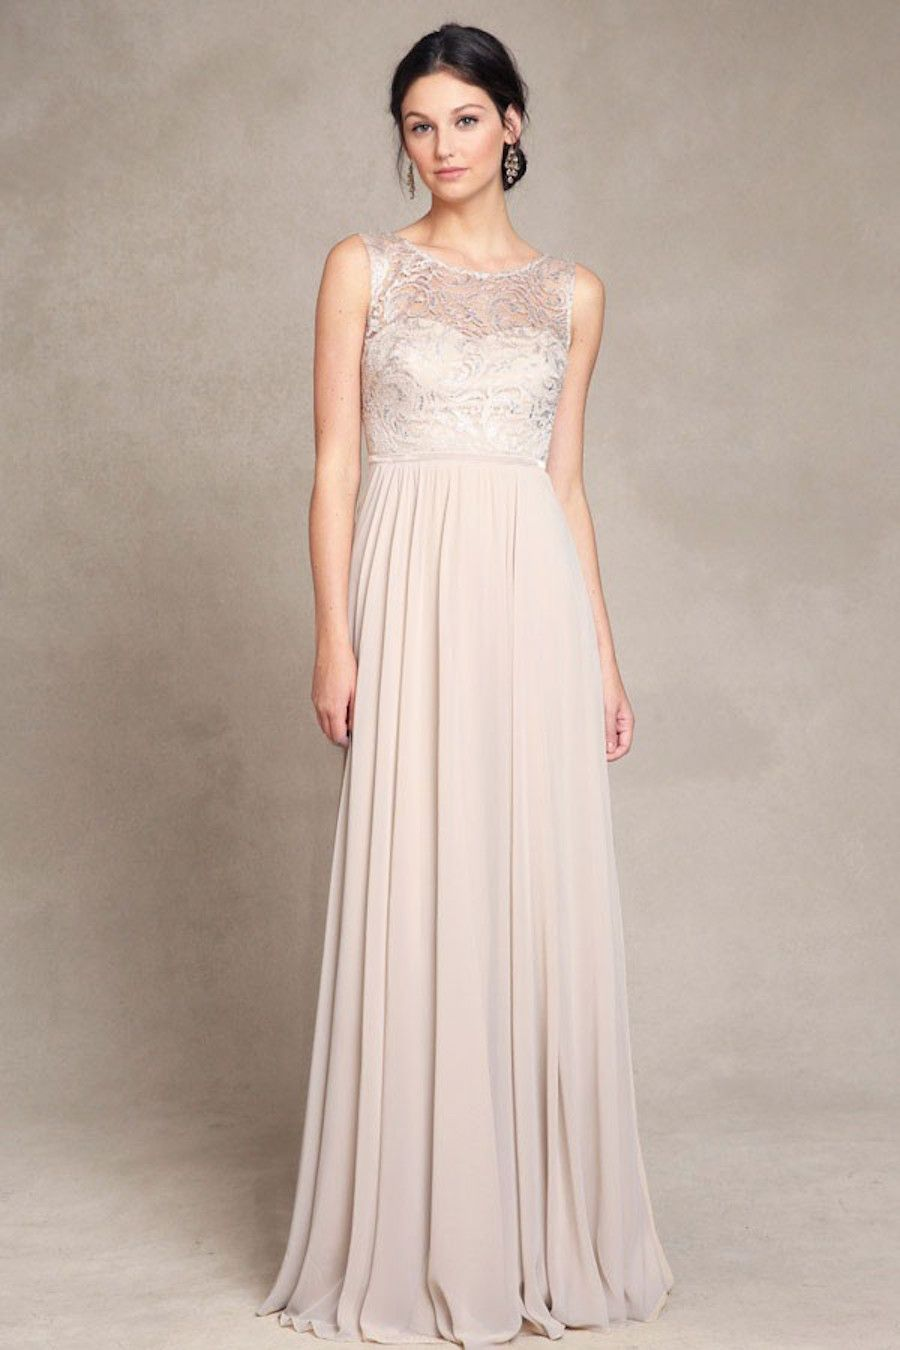 Get the Look: Taylor Swift\'s Blush + Gold Reem Acra Maid of Honor Dress